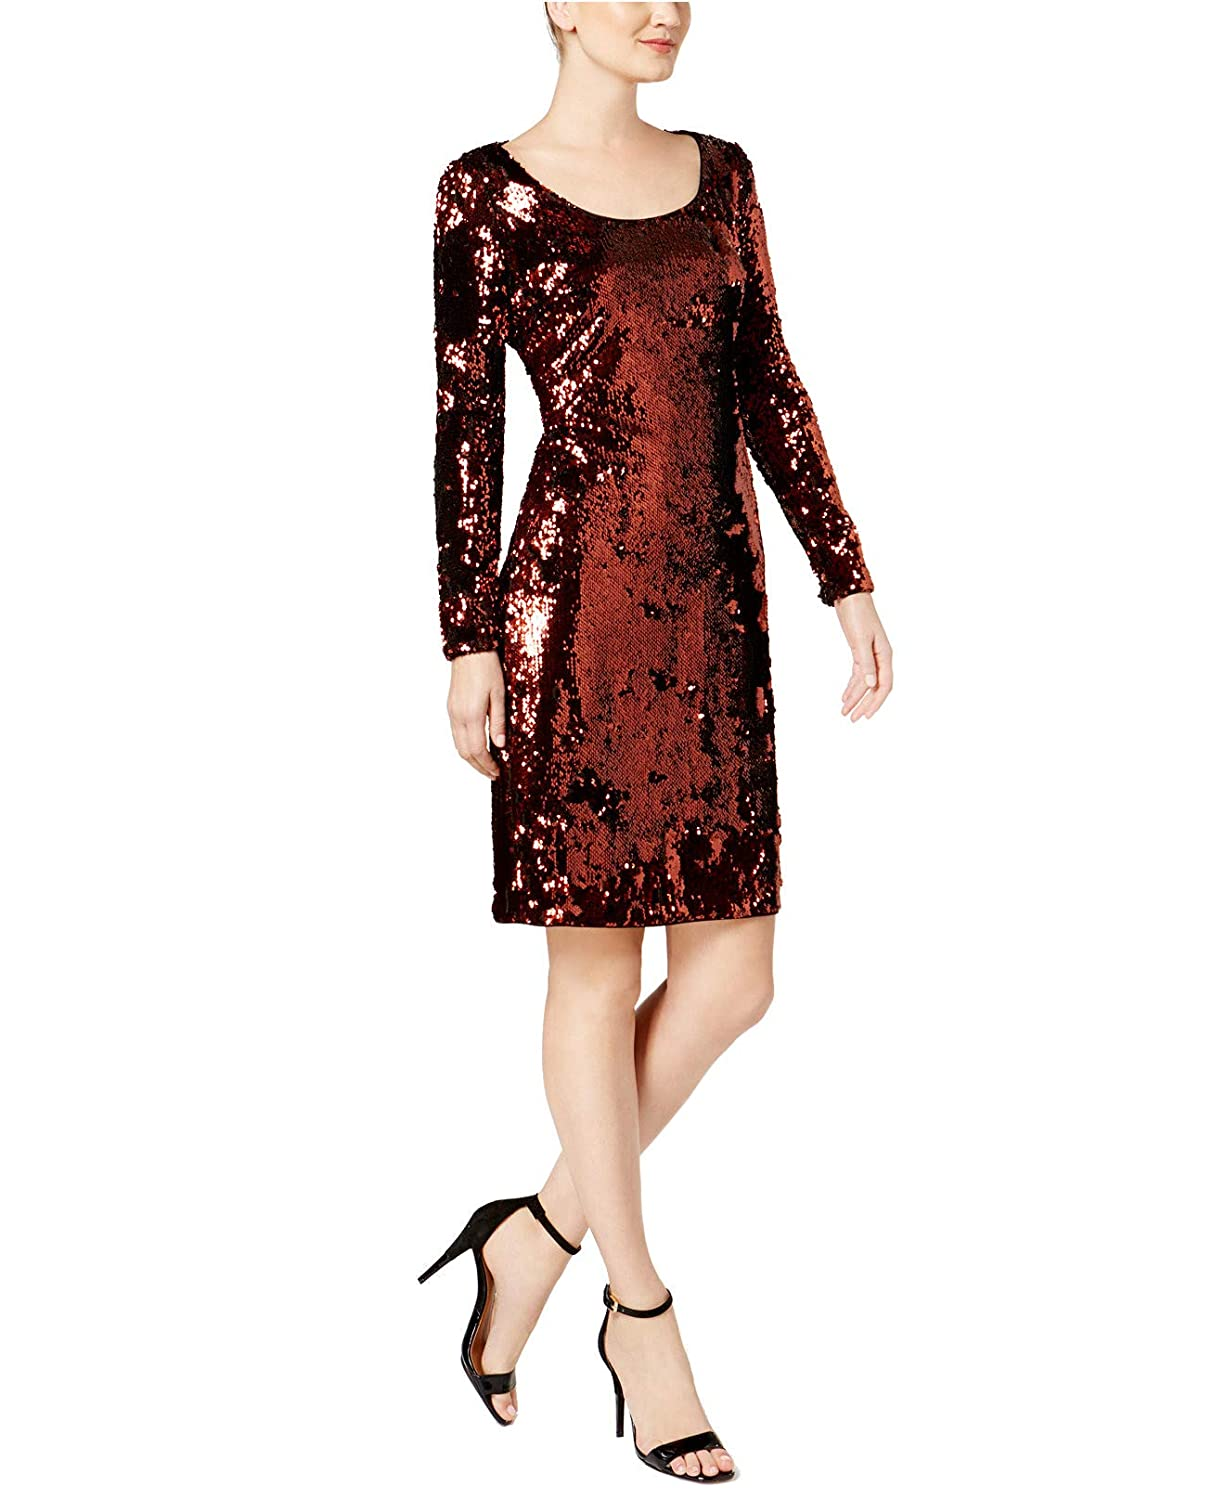 c12a7dda673 Calvin Klein Womens Sequined Mini Cocktail Dress at Amazon Women s Clothing  store